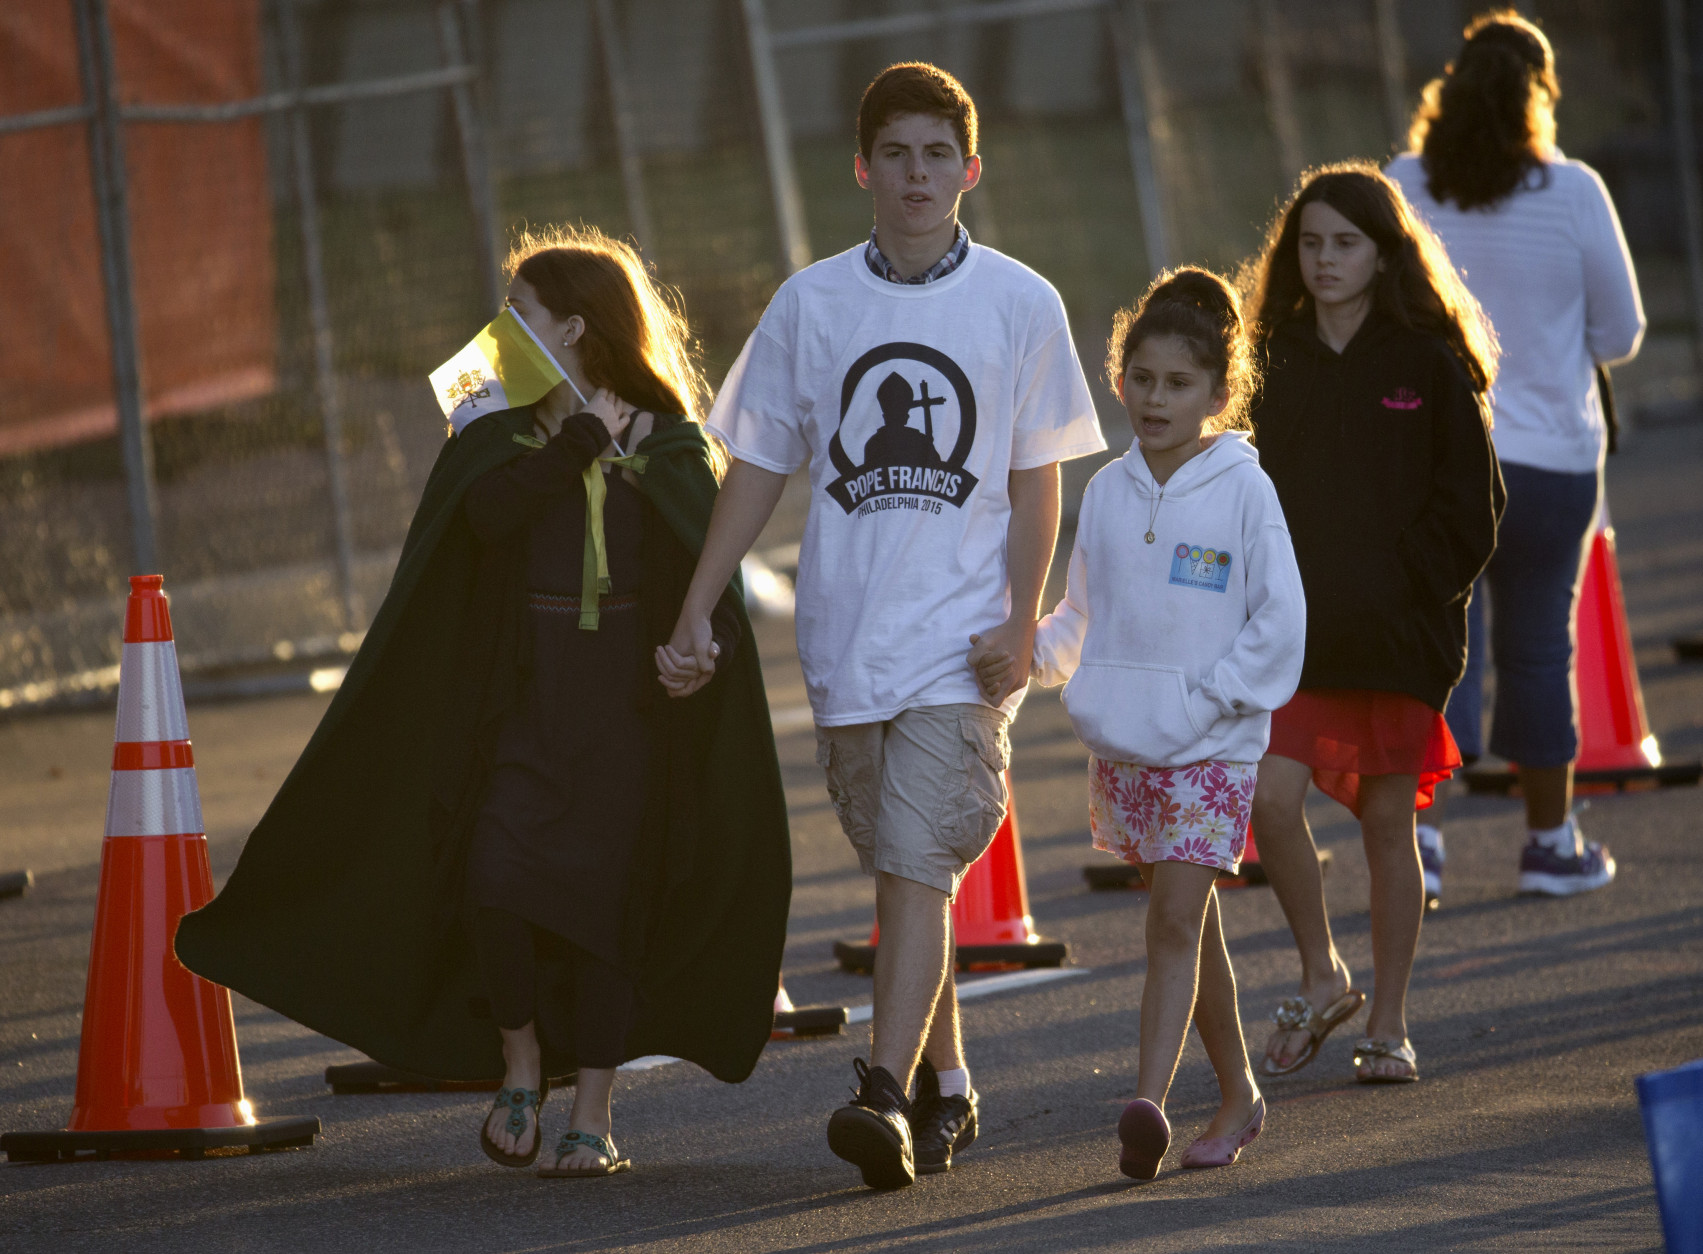 People arrive early to get a spot along Pope Francis' parade route around the Ellipse near the White House in Washington, Wednesday, Sept. 23, 2015. (AP Photo/Carolyn Kaster)